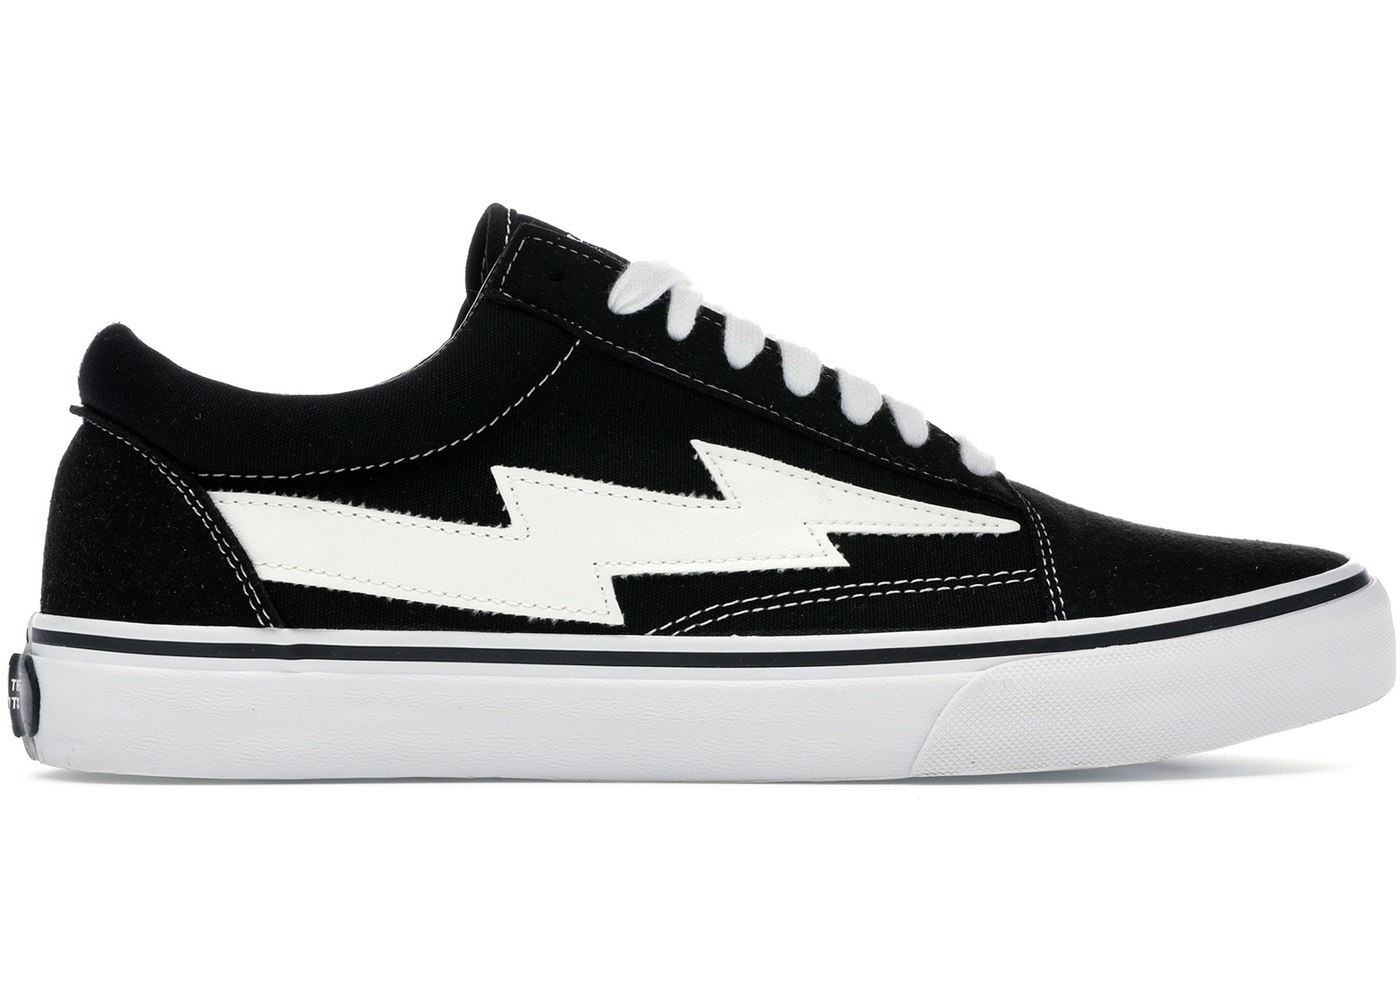 ccad60b86cd8 Revenge X Storm Low Top Black - RS588977-001